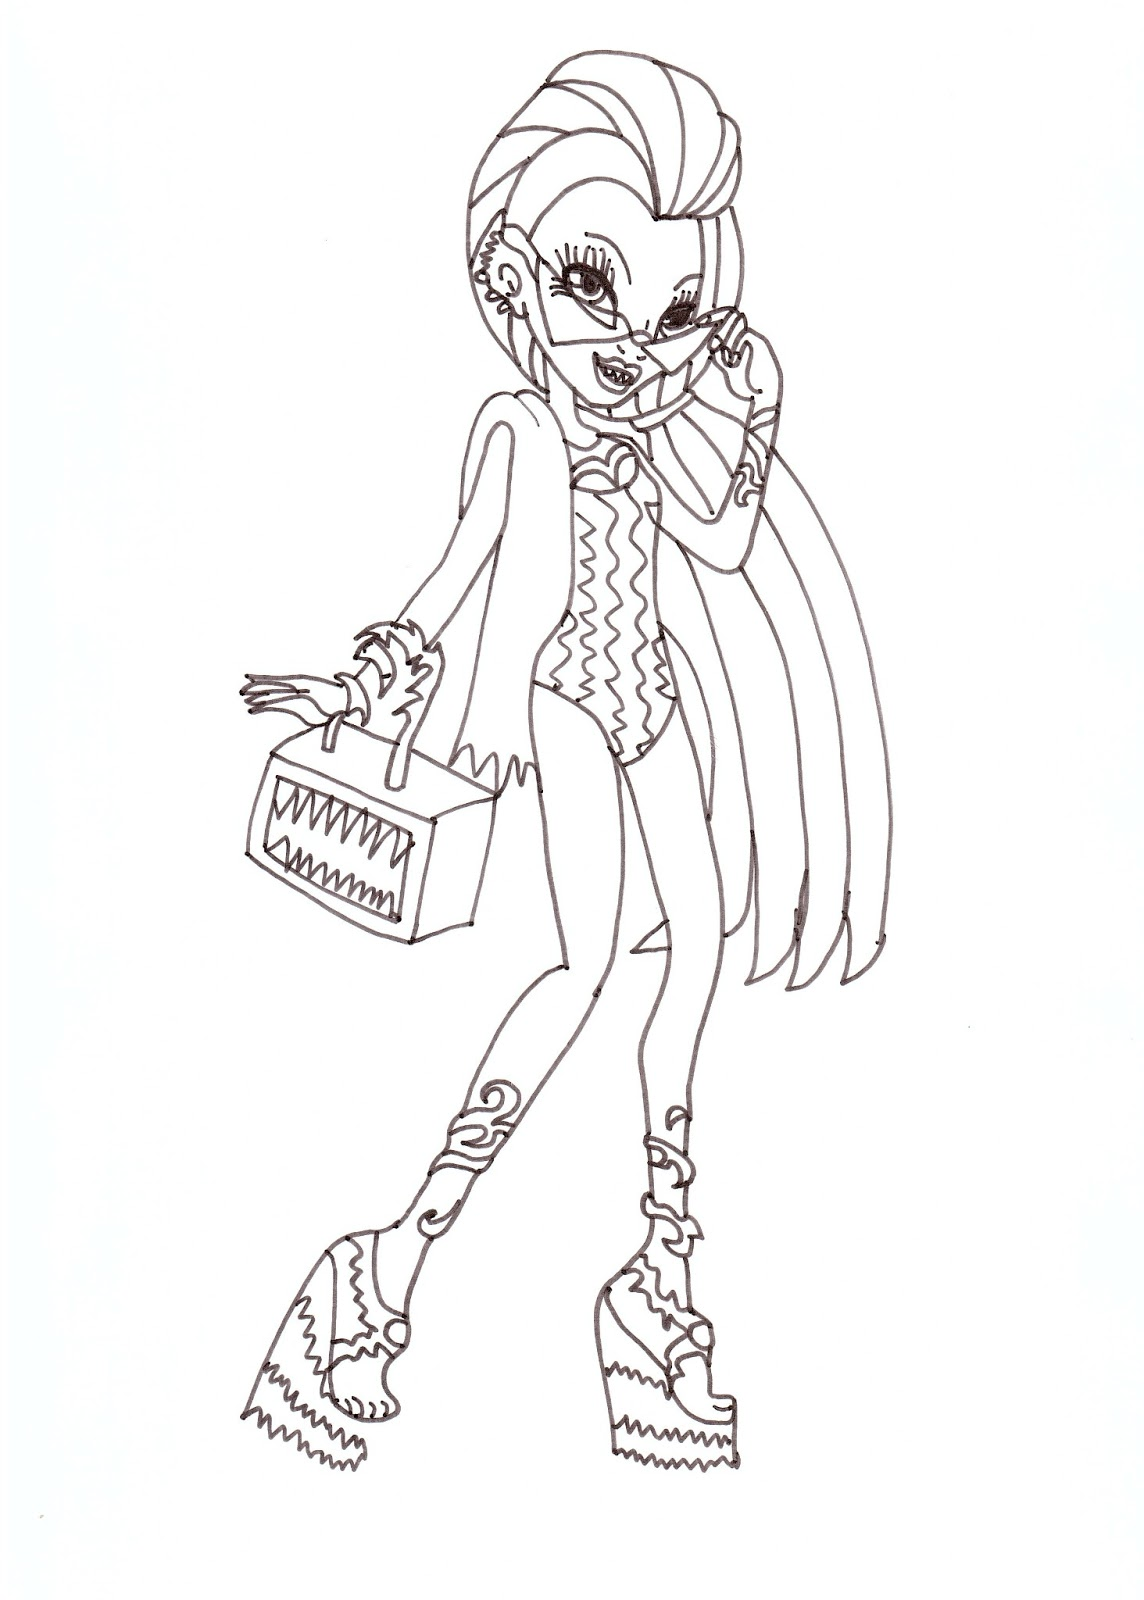 Venus McFlytrap Swim Class Coloring Sheet CLICK HERE TO PRINT Free Printable Monster High